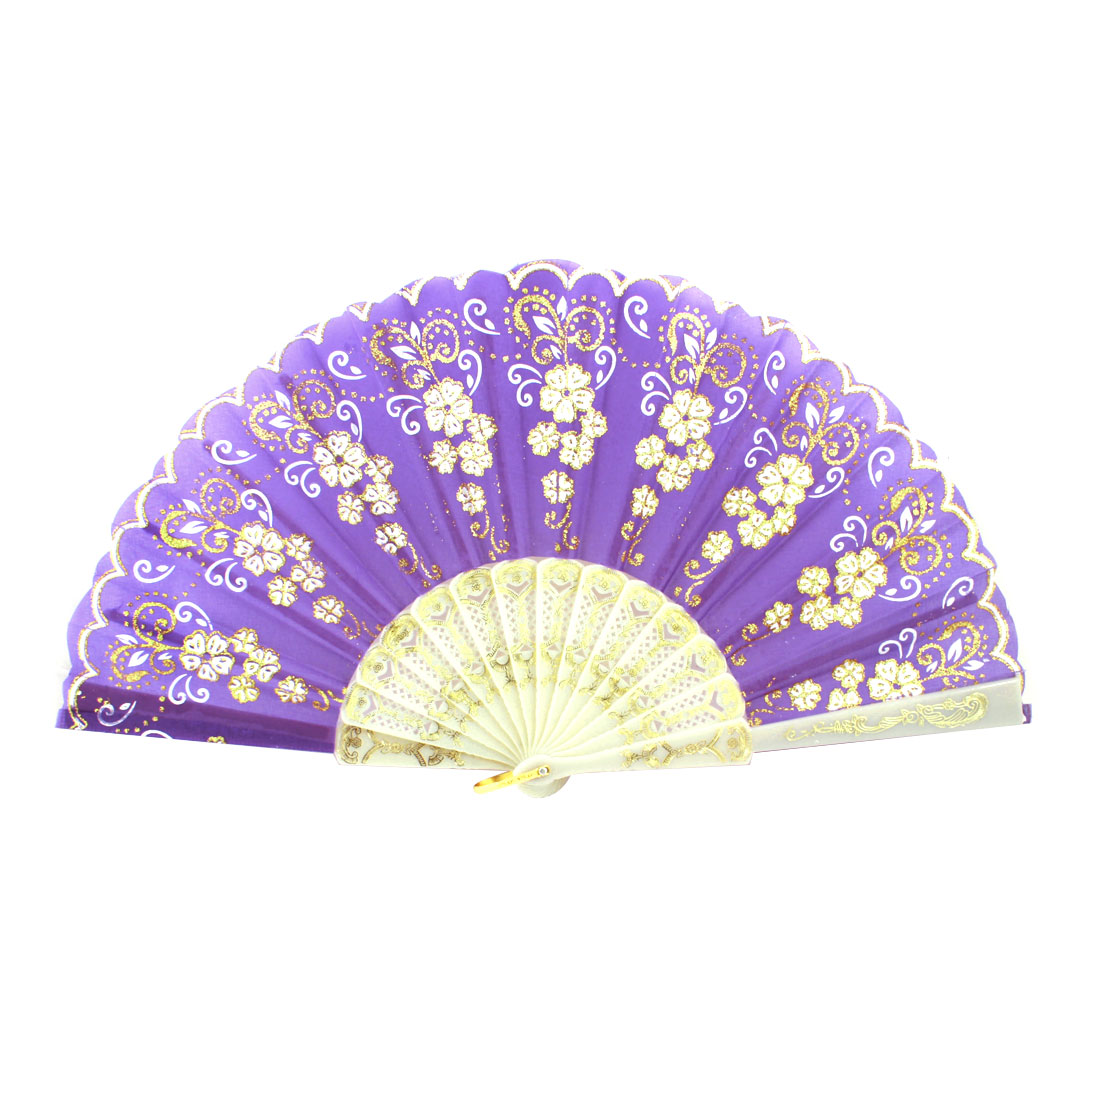 Plastic Rib Gold Tone Glittery Powder Decor Floral Pattern Folding Hand Fan Purple White